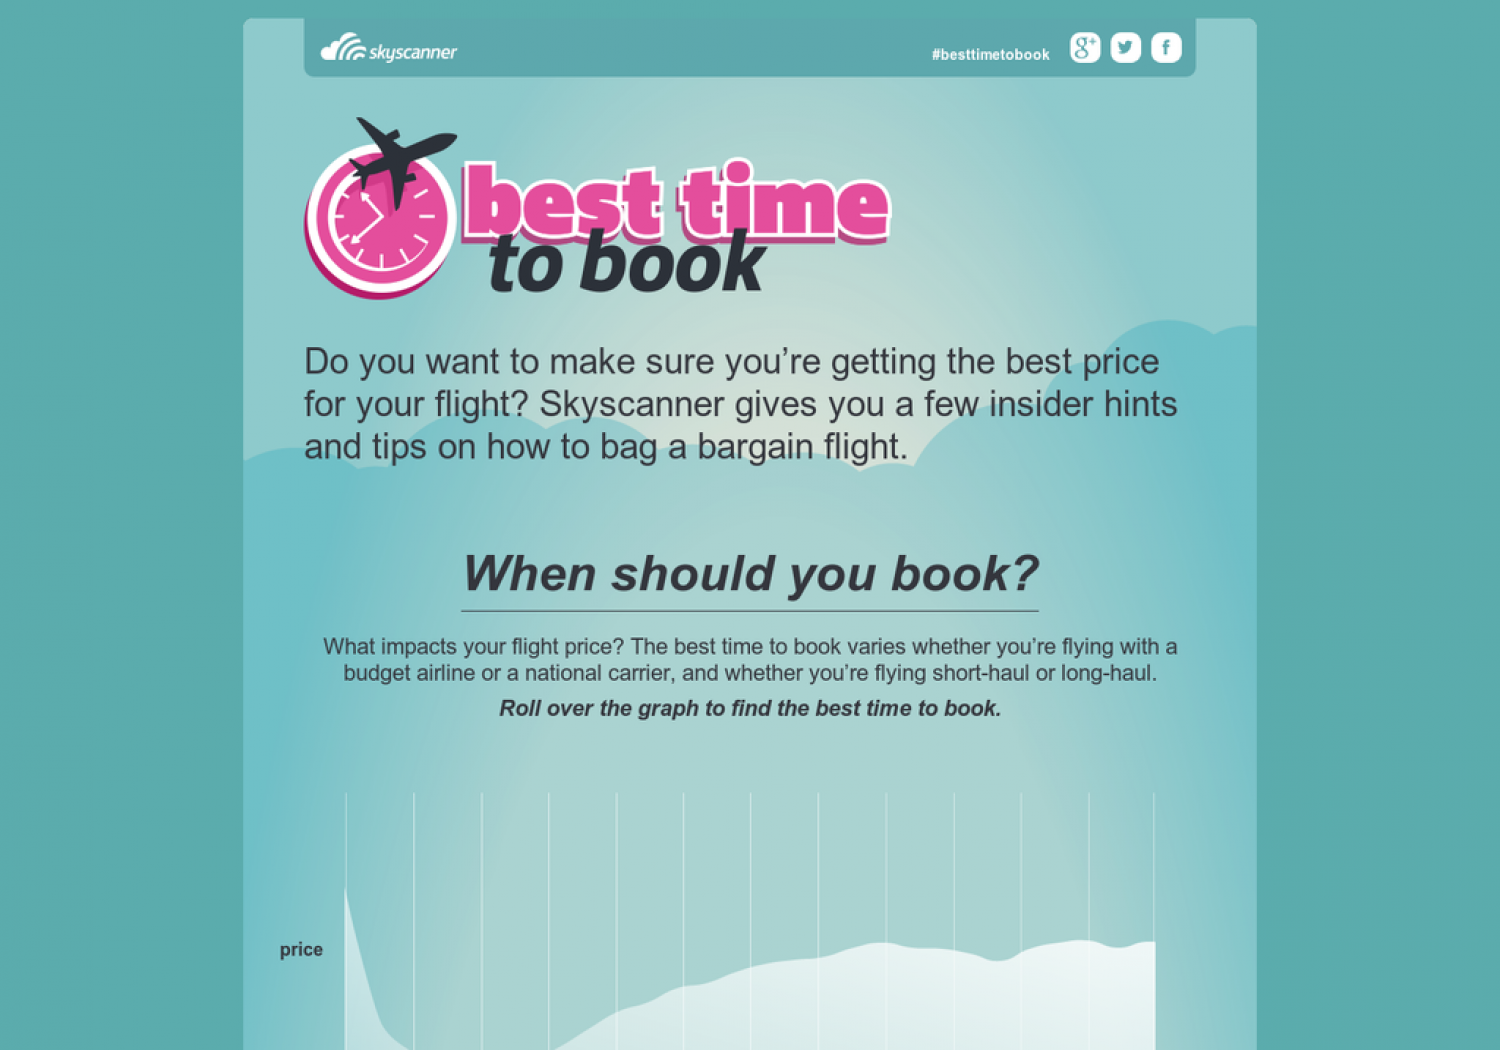 Best Time to Book Infographic